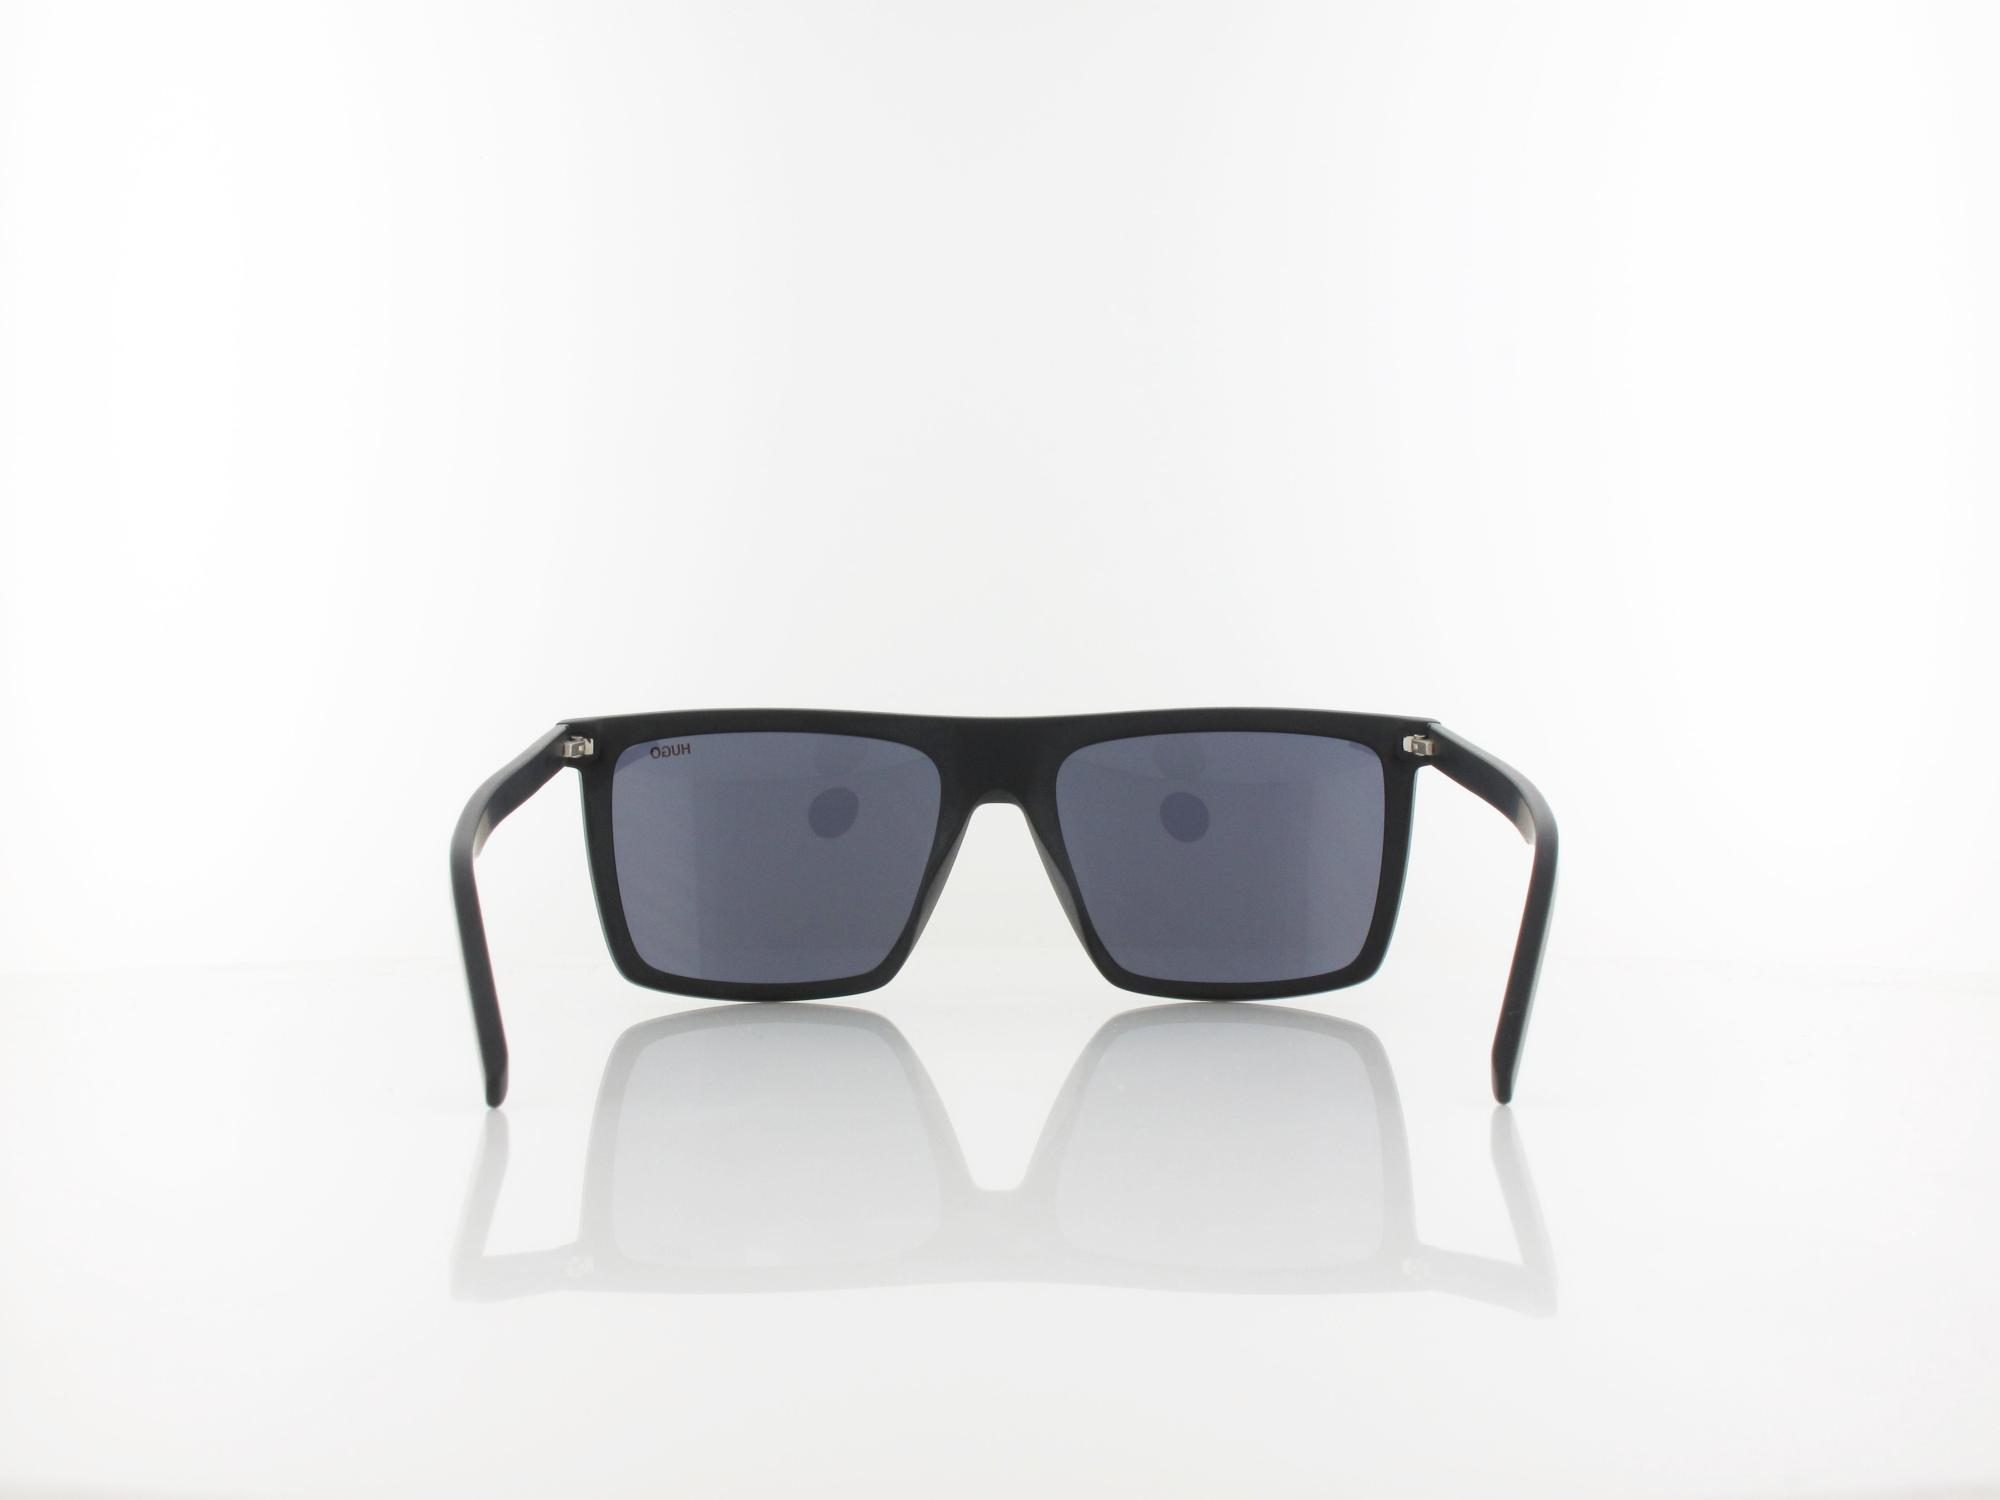 Hugo | HG 1054/S 003/AO 56 | matte black / red mirror